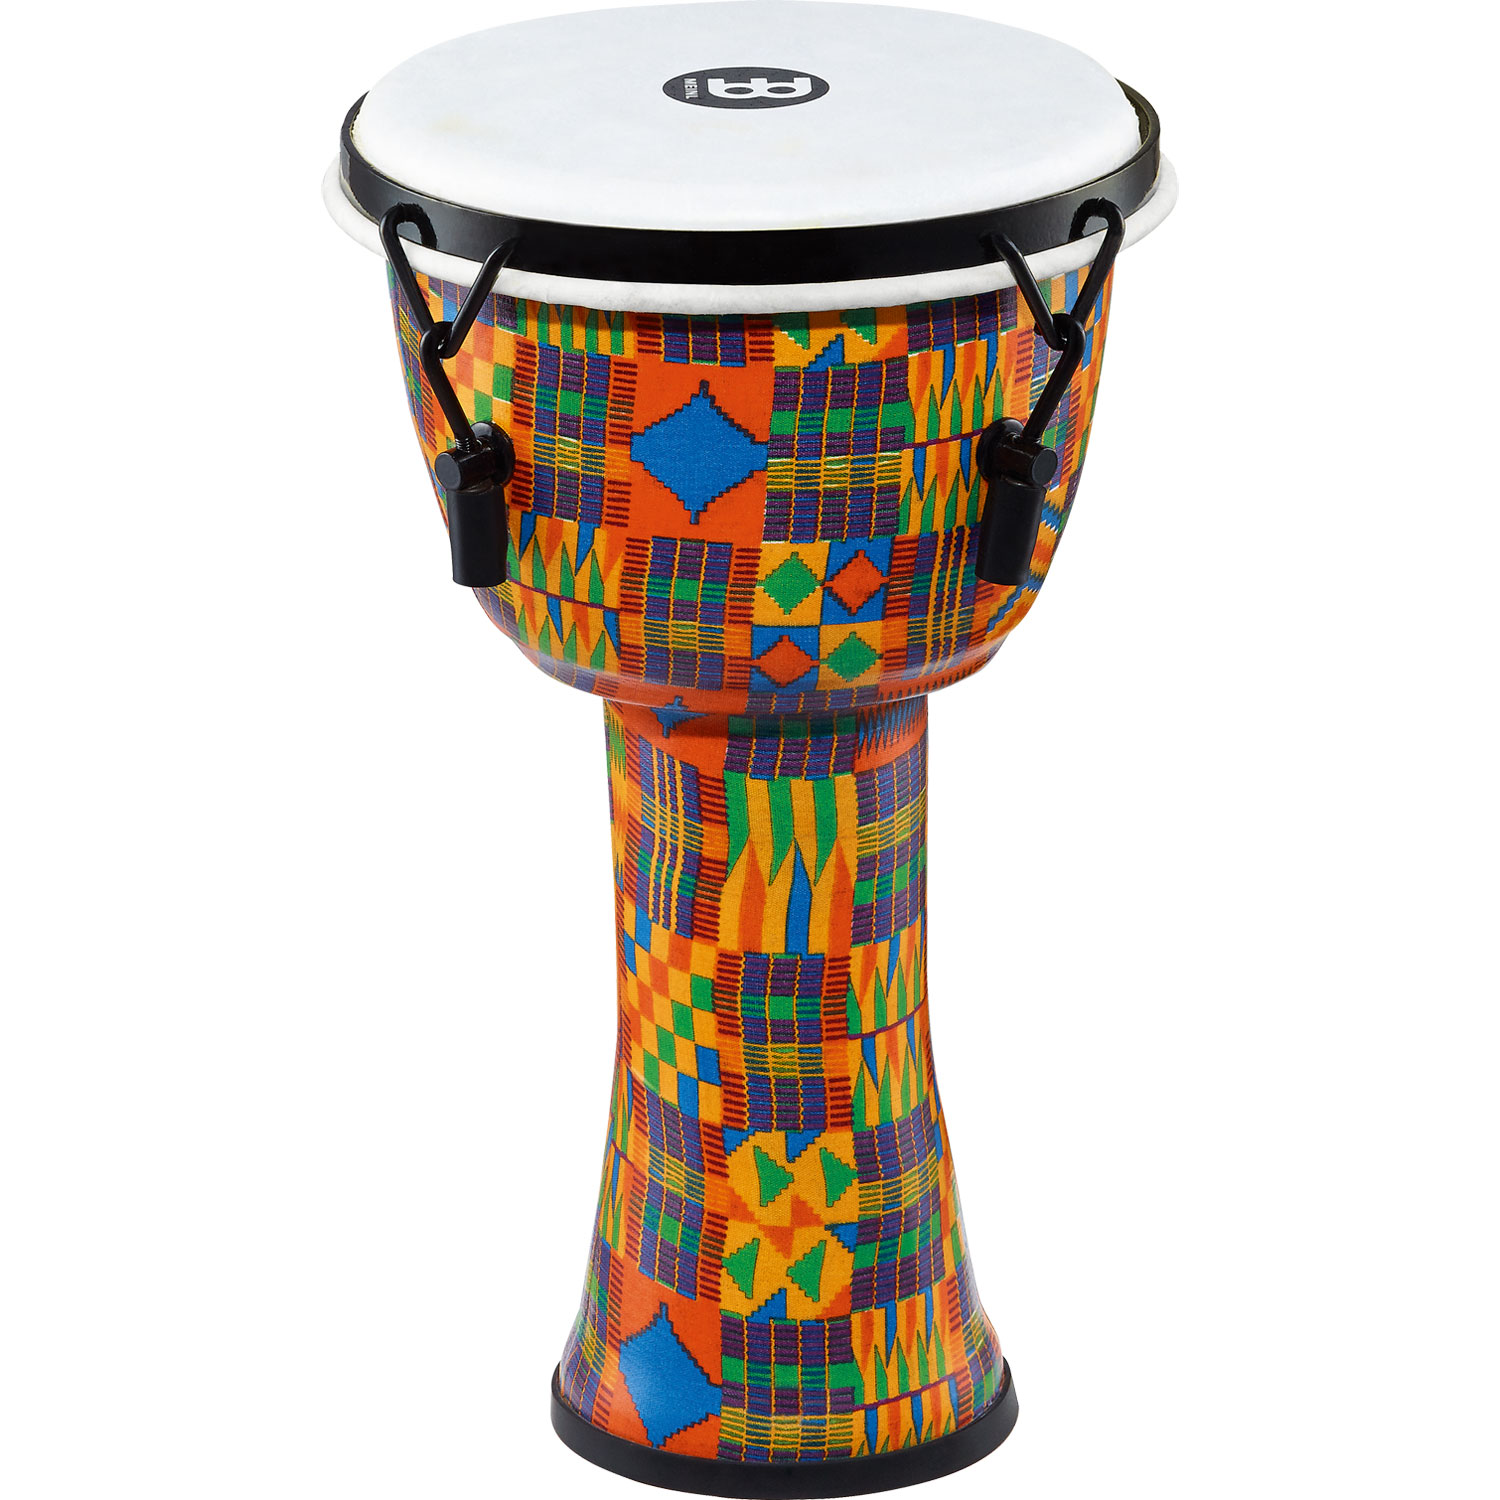 """Meinl 8"""" Mechanically-Tuned Travel Djembe in Kenyan Quilt with Synthetic Head"""